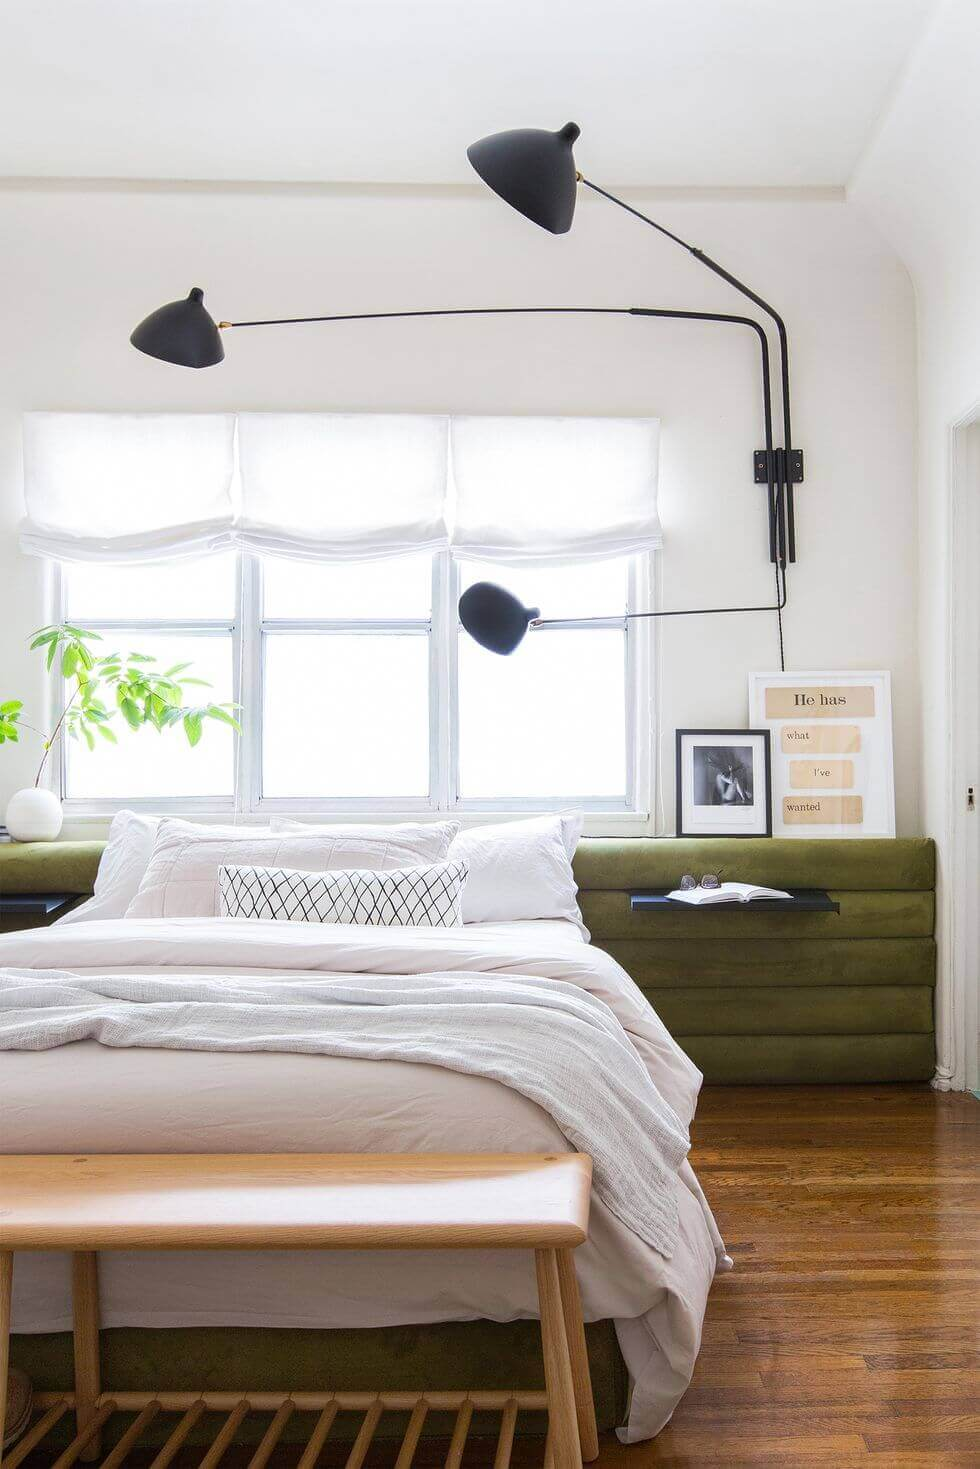 Best Bedroom Ideas for Couples Customize It